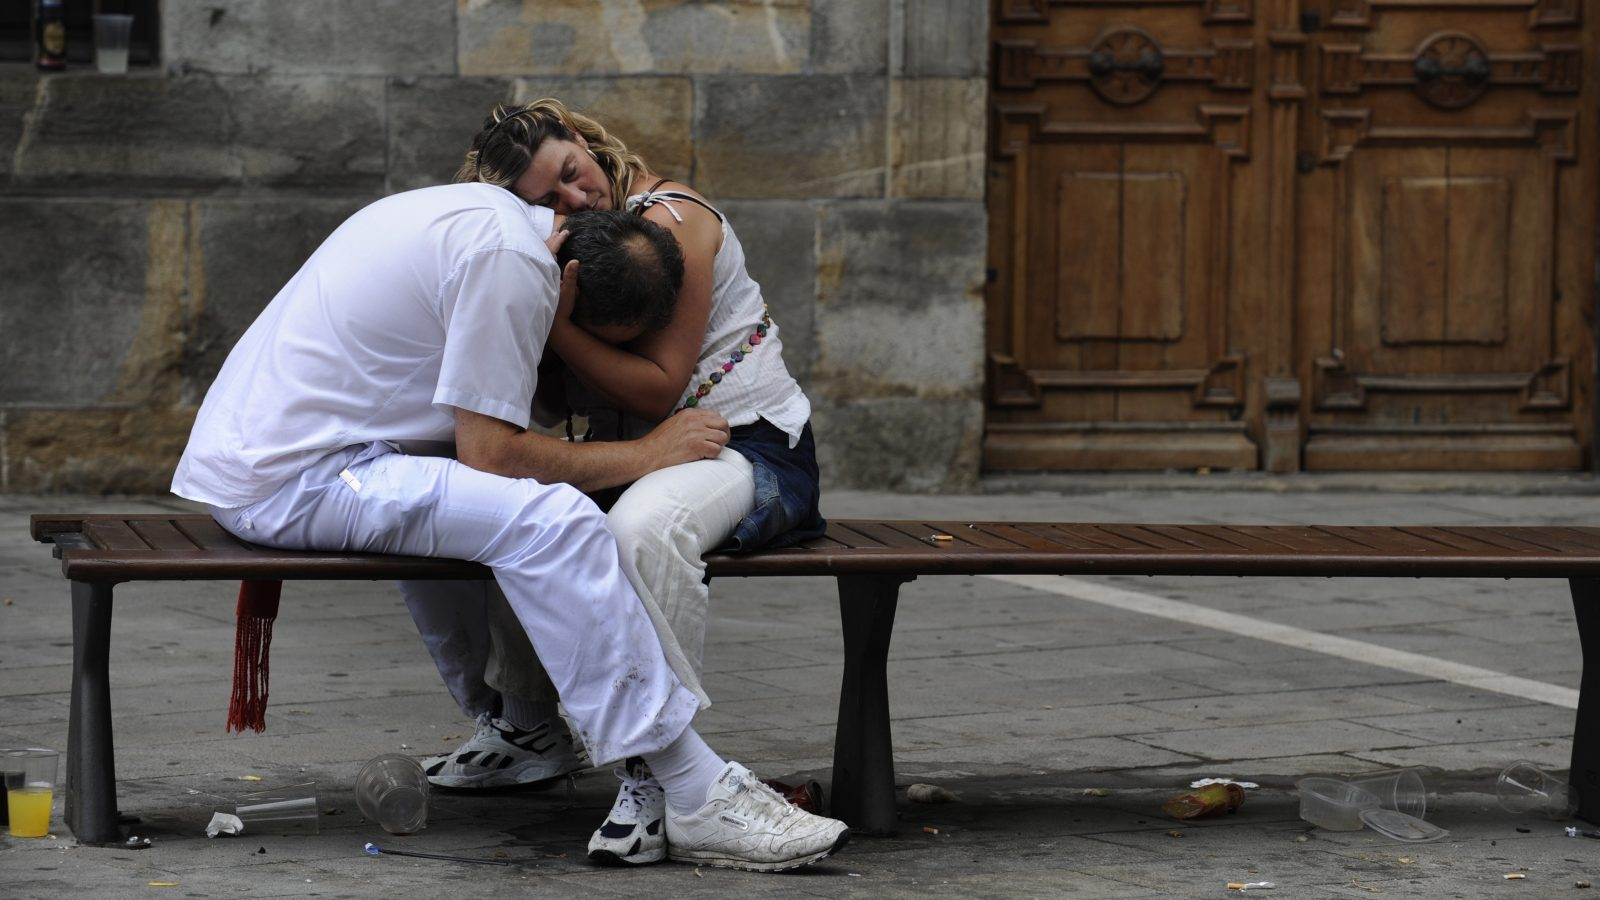 """A sleeping couple embrace on the fifth day of the San Fermin festival in Pamplona July 10, 2011. Visitors to the nine day festival, depicted in Ernest Hemingway's 1926 novel """"The Sun Also Rises"""", take part in activities including The Running Of The Bulls, an early morning half mile dash from the corral to the bullring alongside six bulls destined to die in the afternoon's corrida. This is followed by processions of giant traditional figures, concerts, firebulls, fireworks, and large doses of eating, drinking, dancing and late nights. REUTERS/Eloy Alonso (SPAIN - Tags: SOCIETY) - RTR2OPAY"""